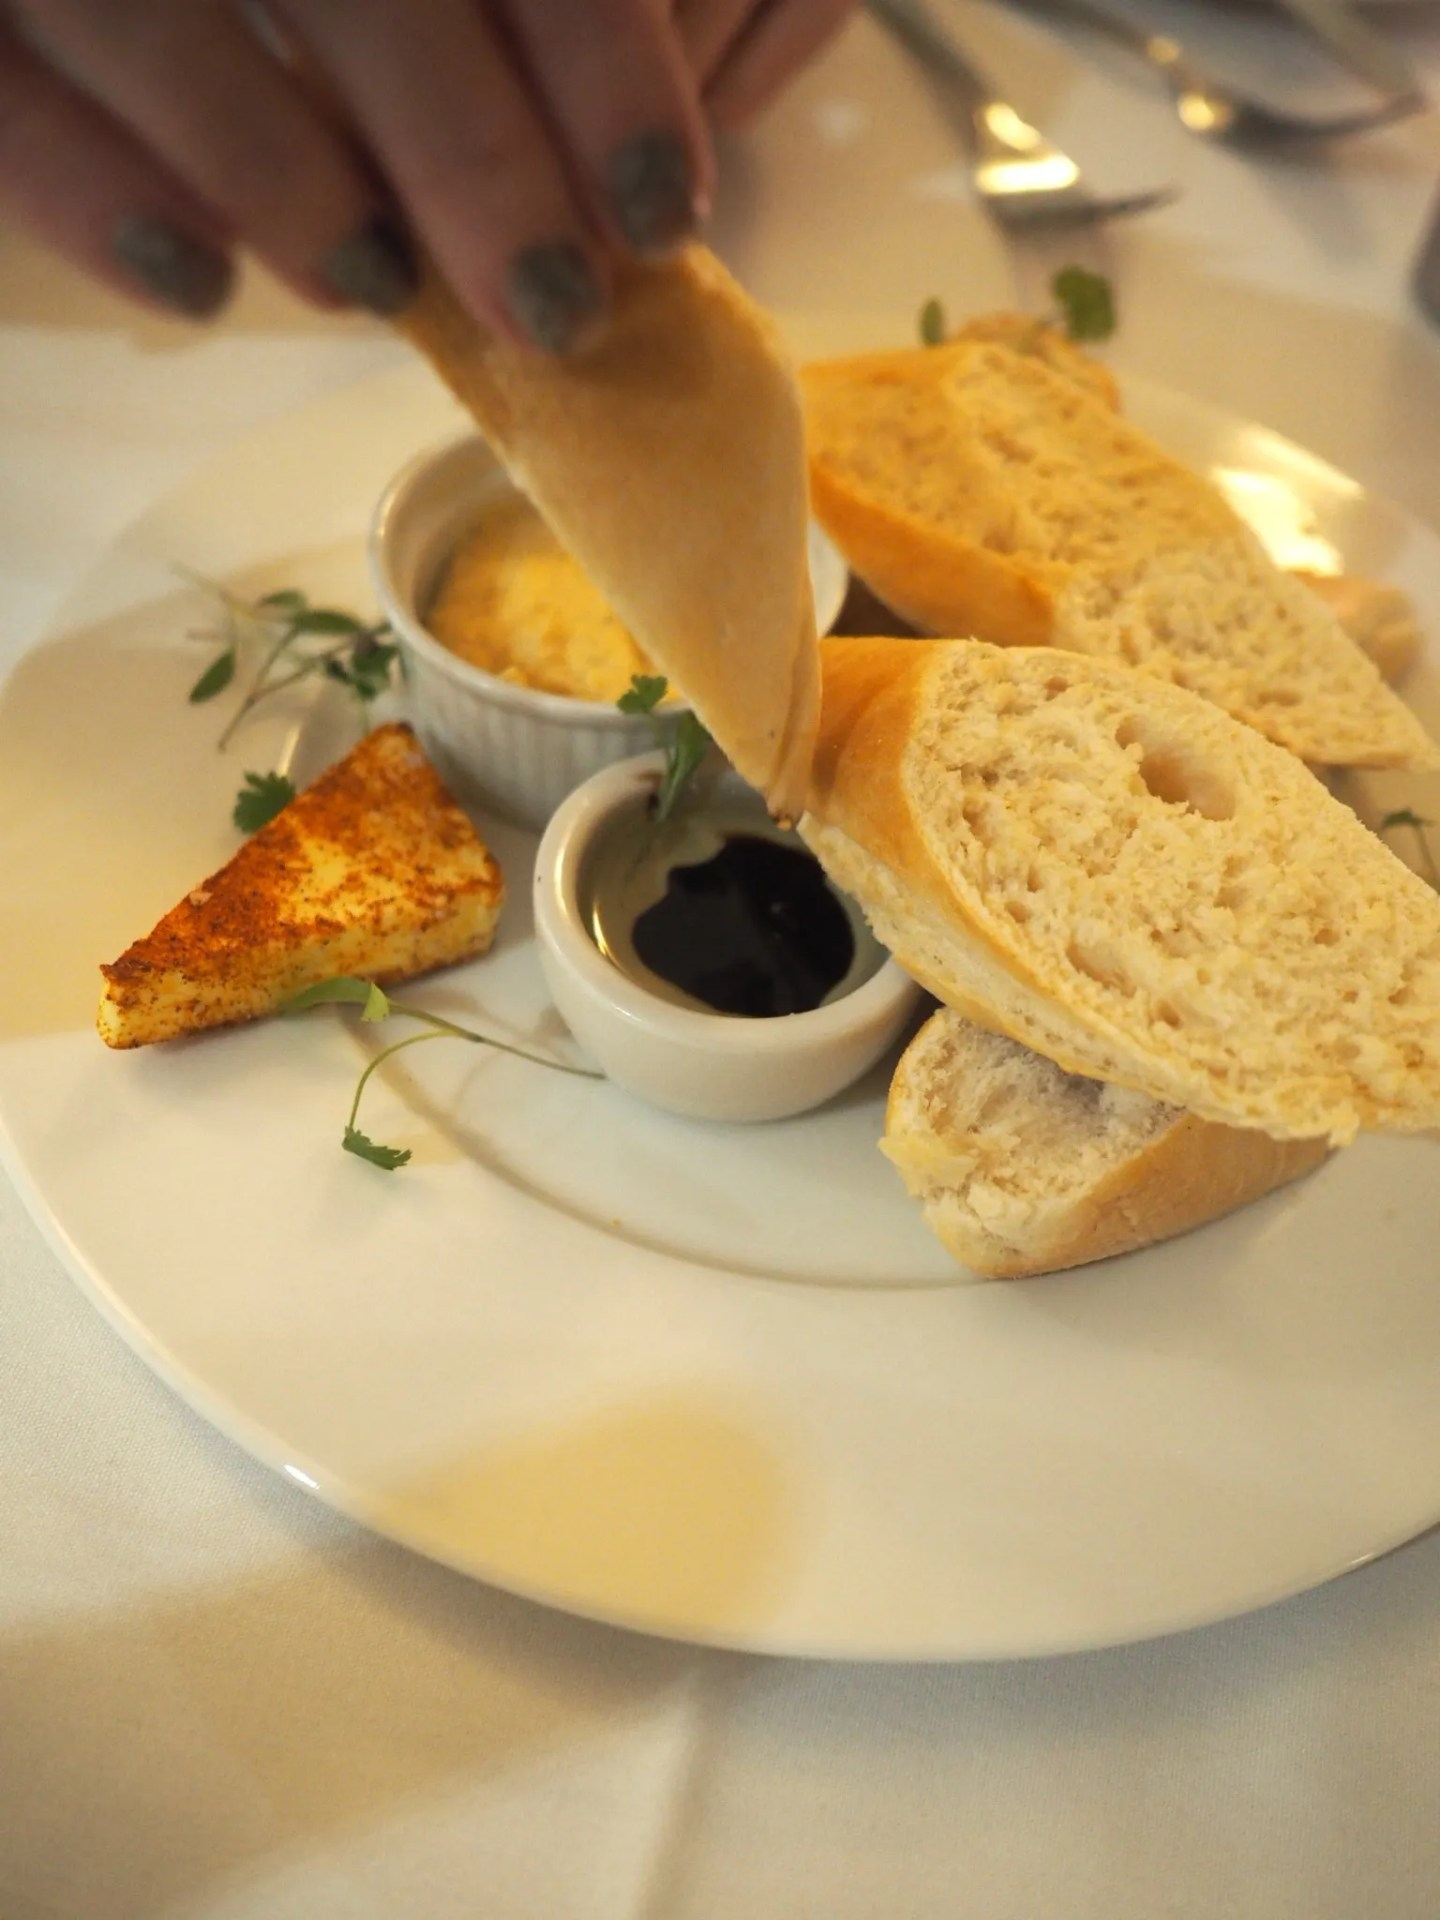 What-LizzyLoves-Bank-House-Hotel-spa-review-Worcester-spa-dinner-bread